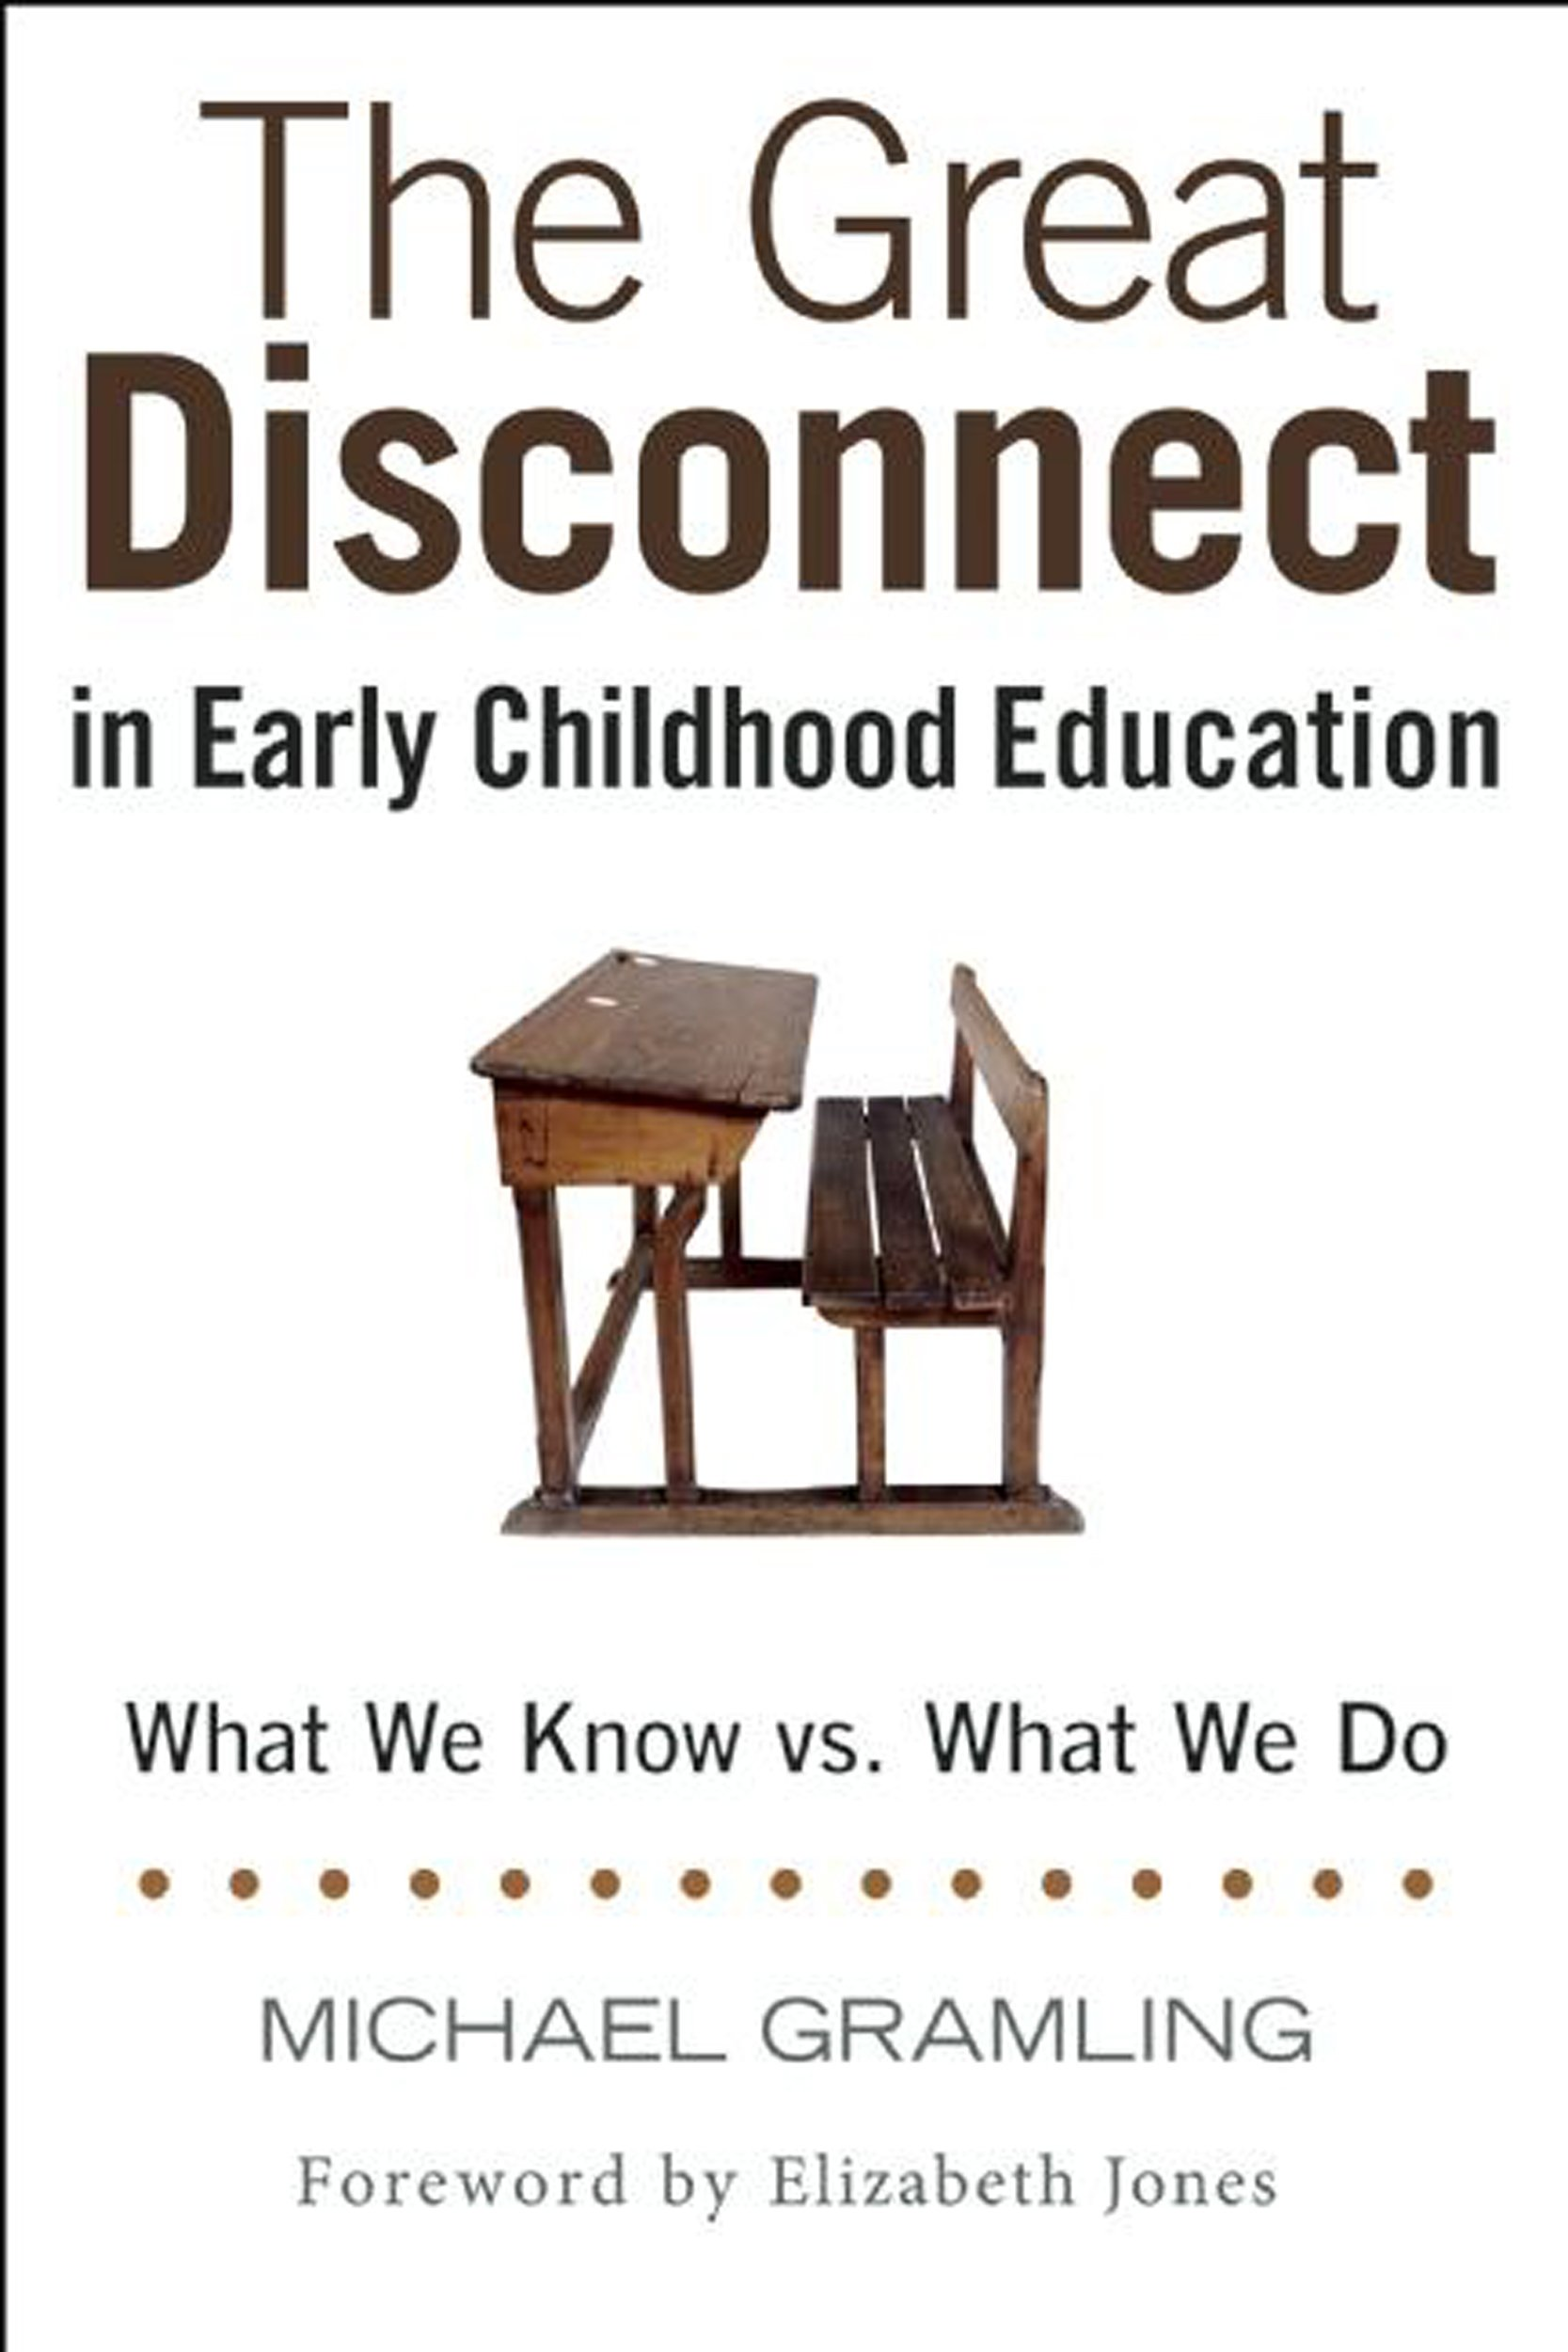 Download The Great Disconnect in Early Childhood Education: What We Know vs. What We Do pdf